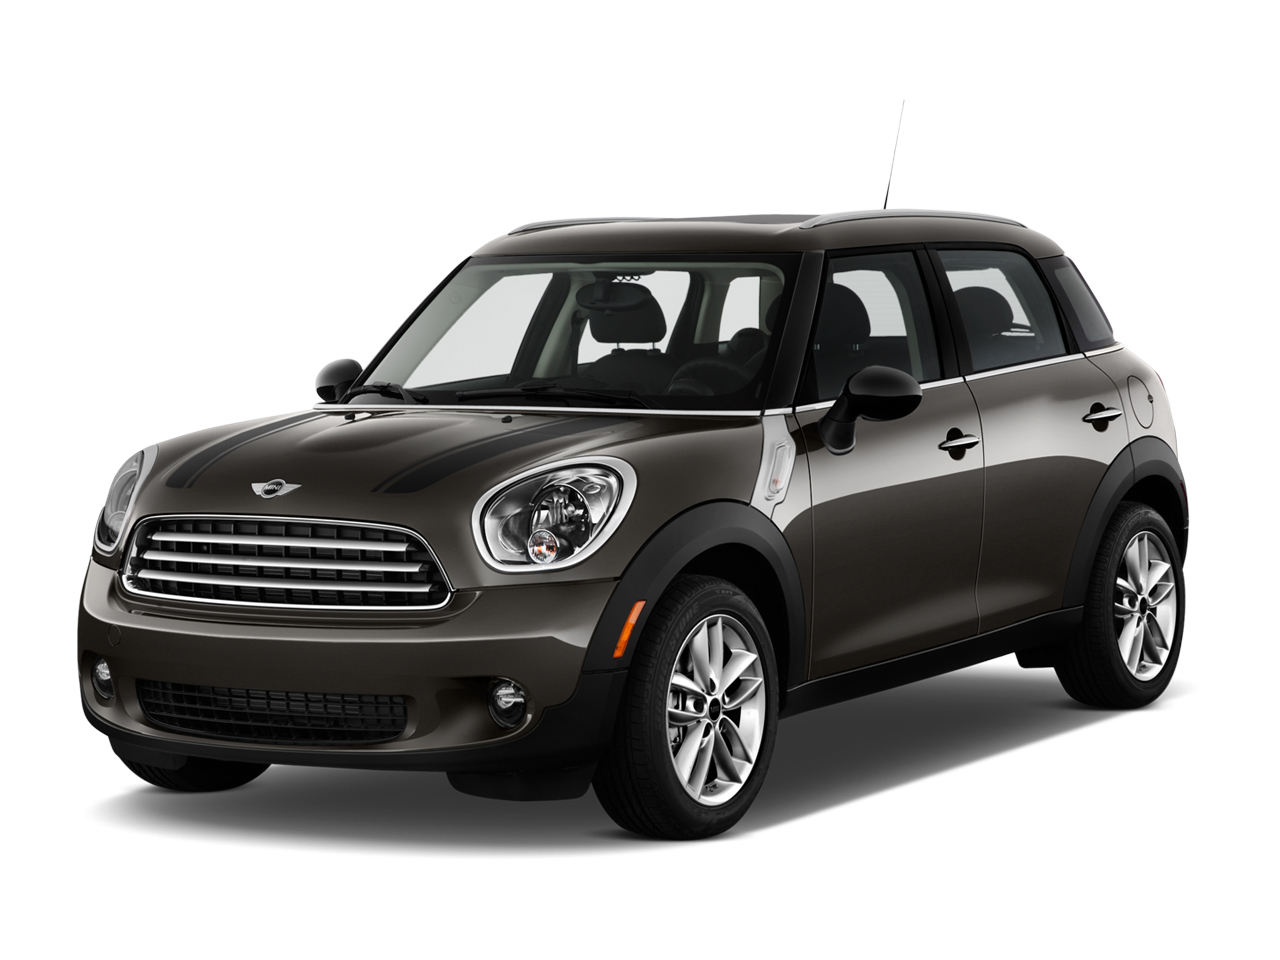 2013 mini cooper countryman review ratings specs prices and photos the car connection. Black Bedroom Furniture Sets. Home Design Ideas